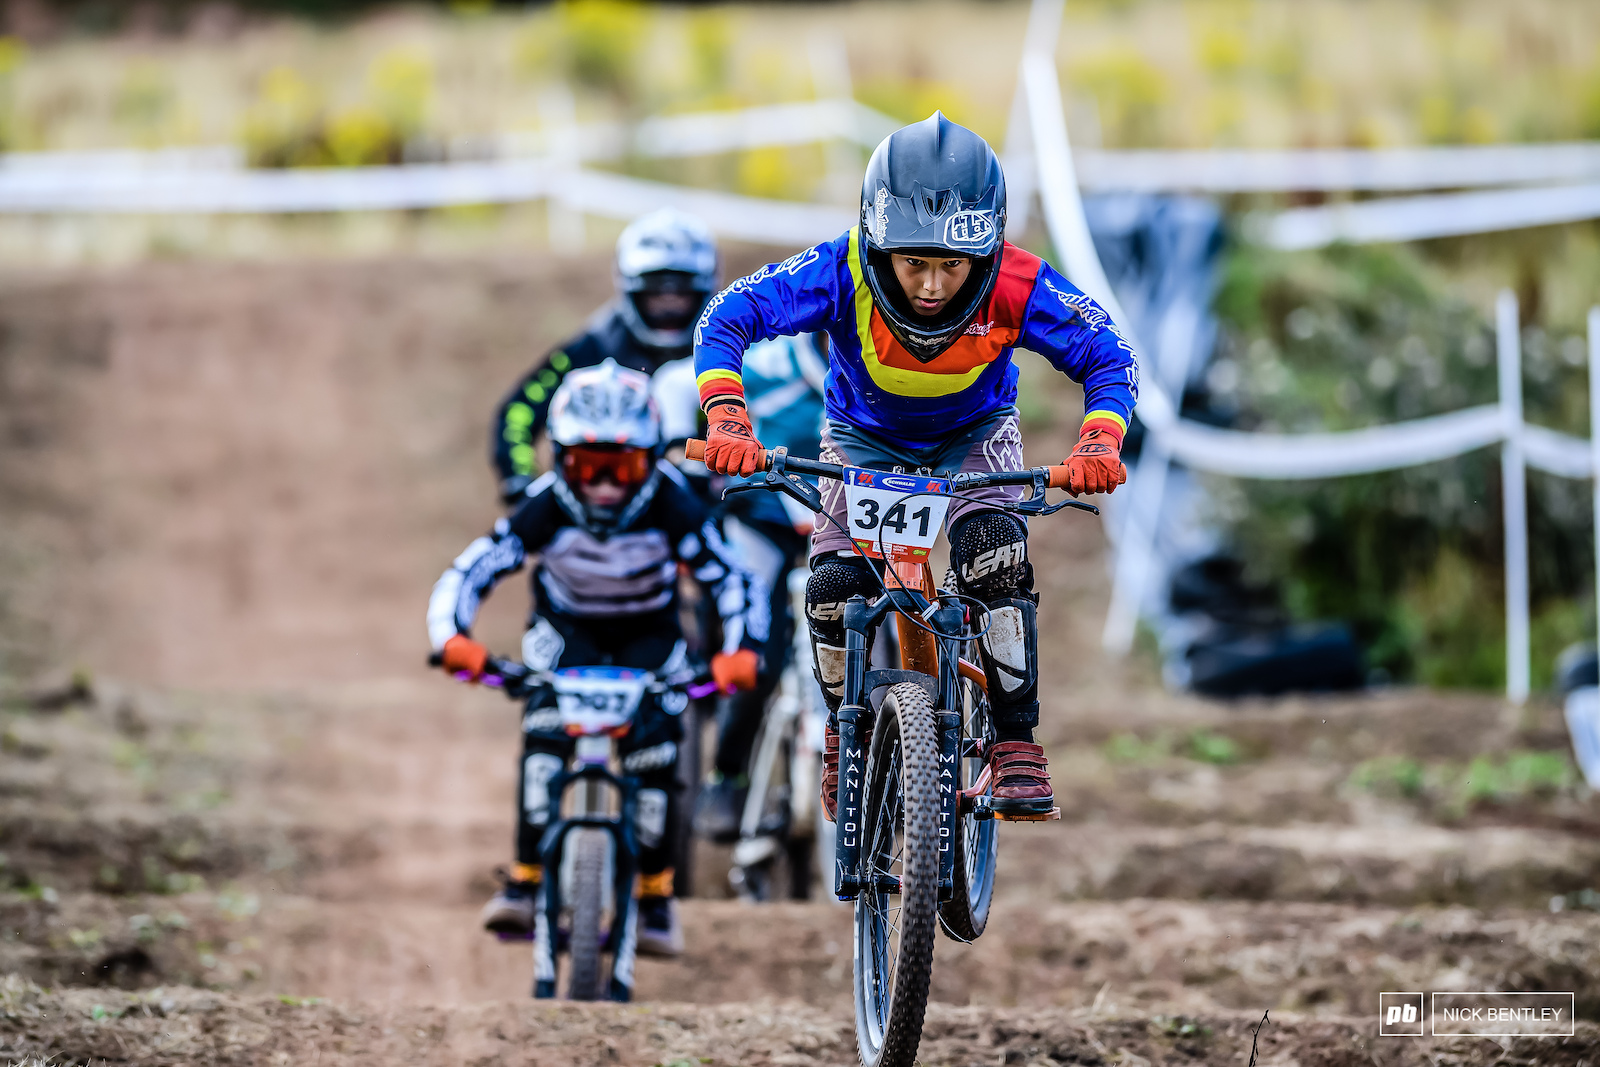 Robin Matern Alonso took home the win in the 10-12 class. After a massive crash that brought practice to a holt.